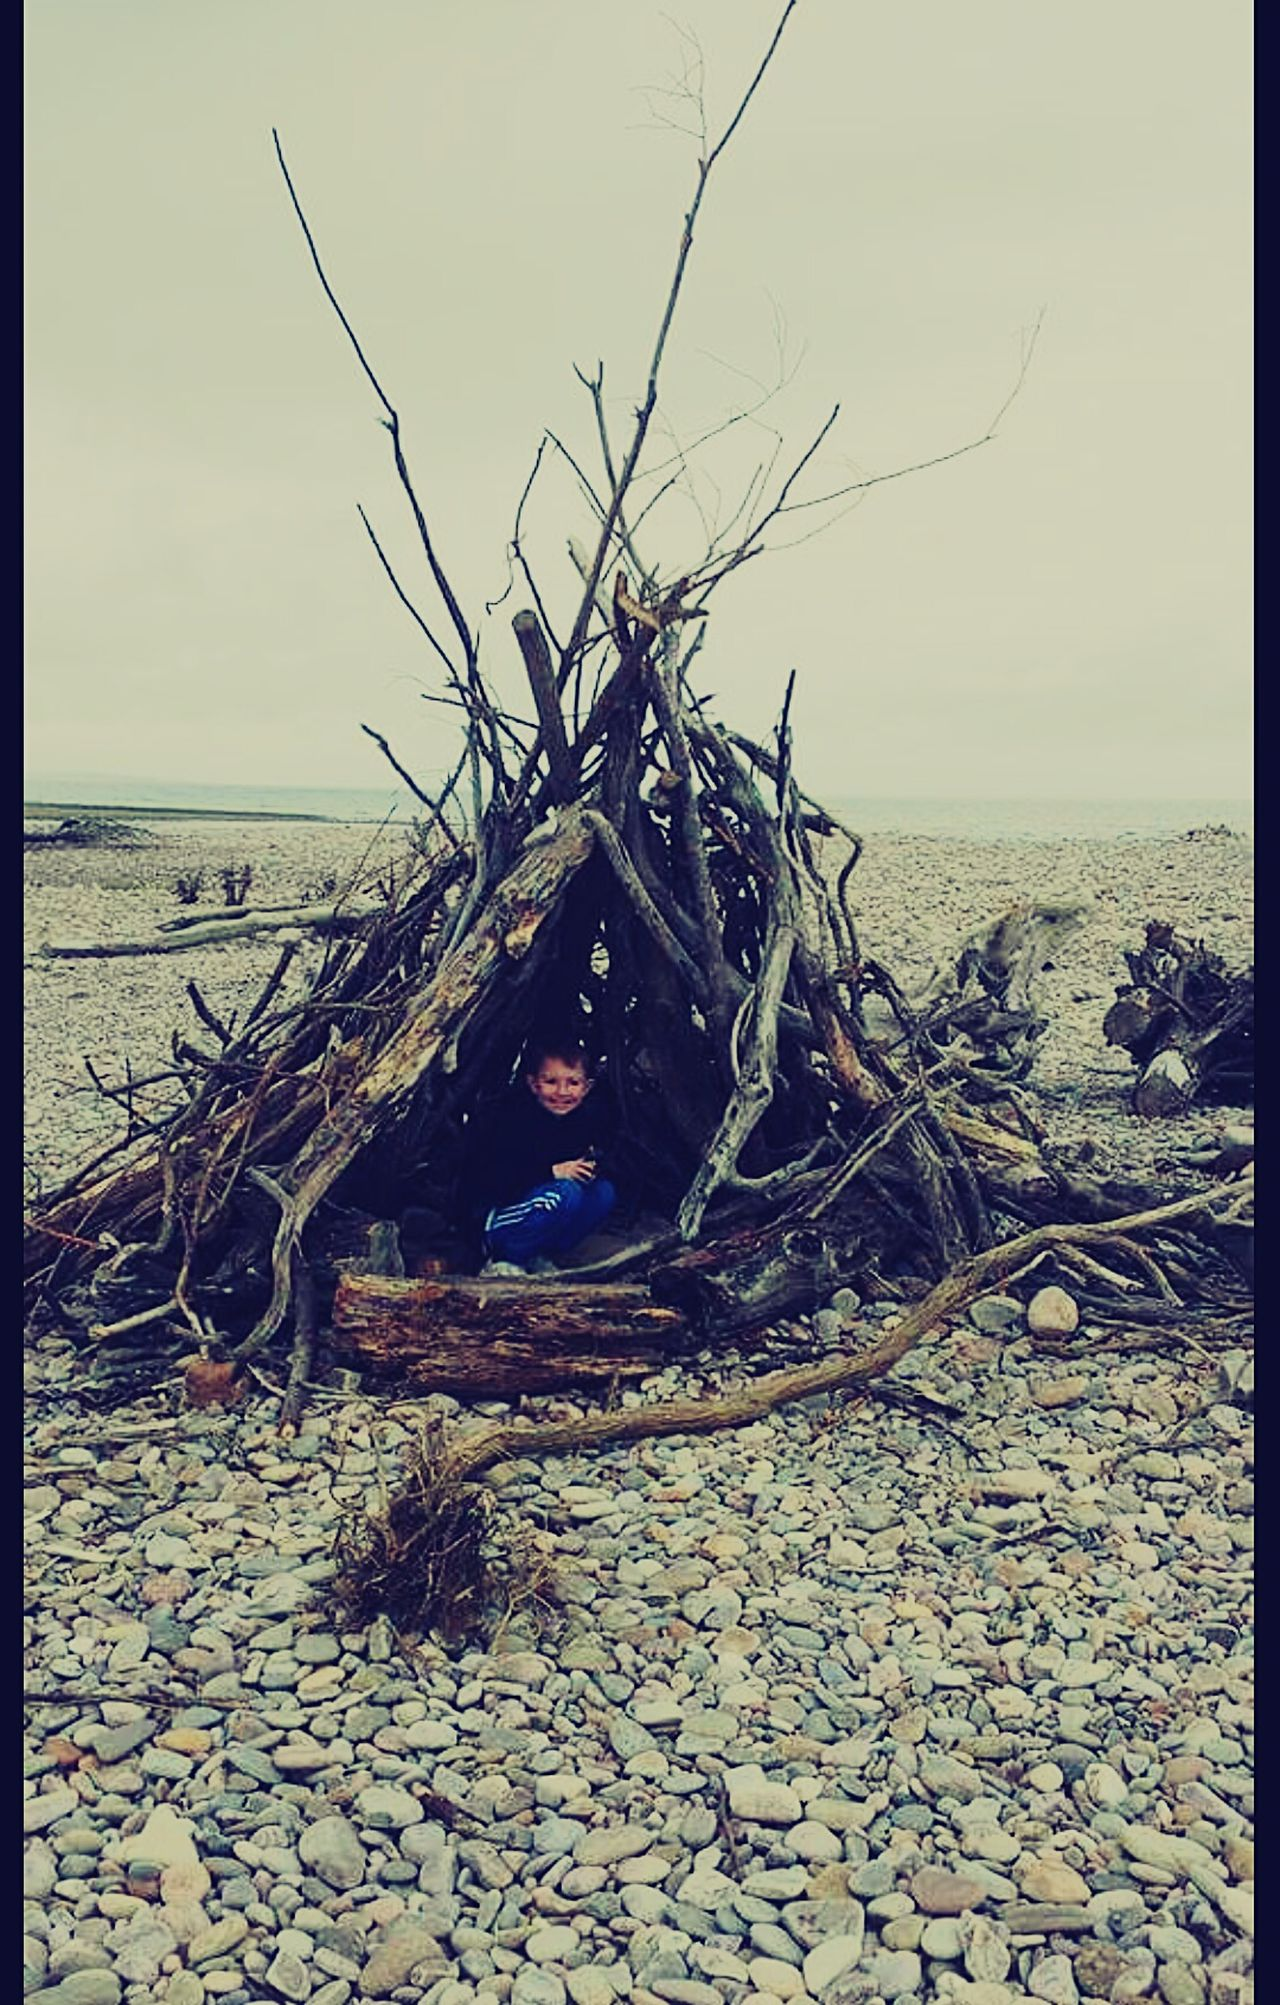 Pebbles On The Beach Teepee Funtimes Driftwood Spey Bay